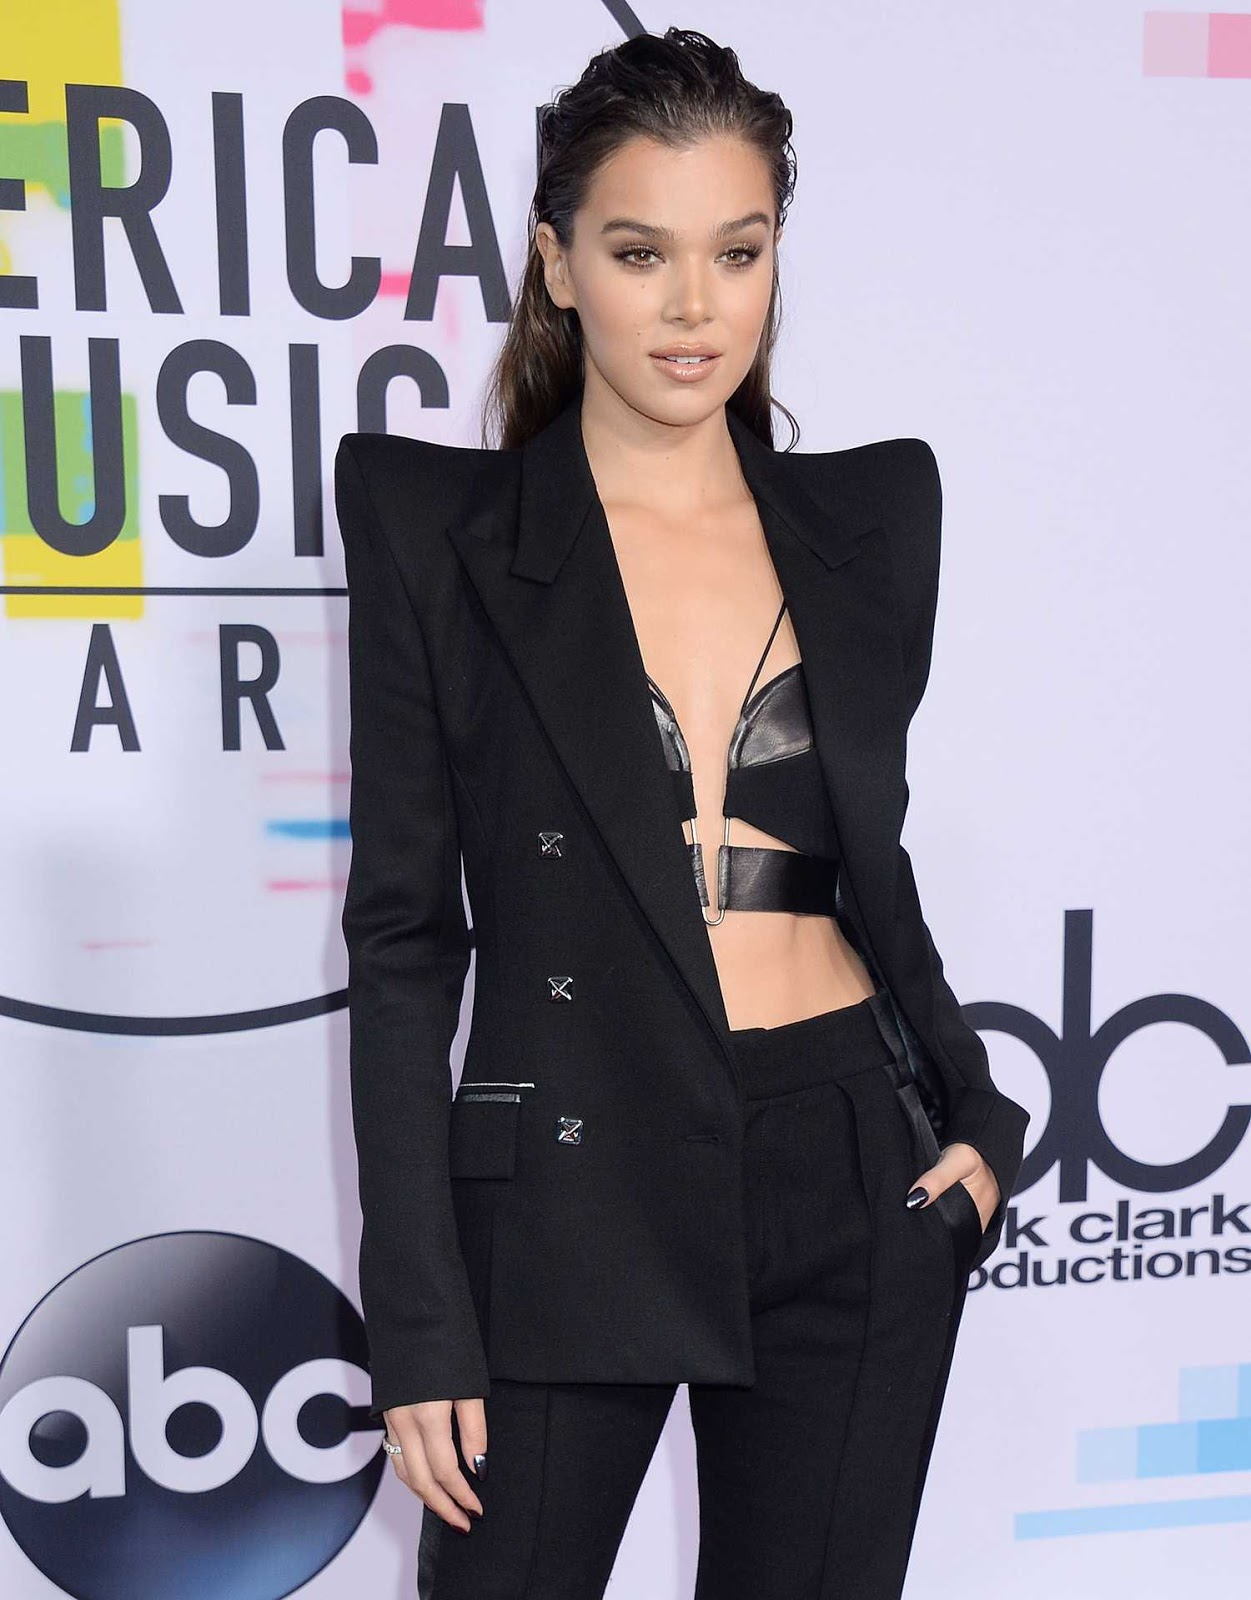 Hailee Steinfeld flaunts leather bralet and blazer at the 2017 AMAs